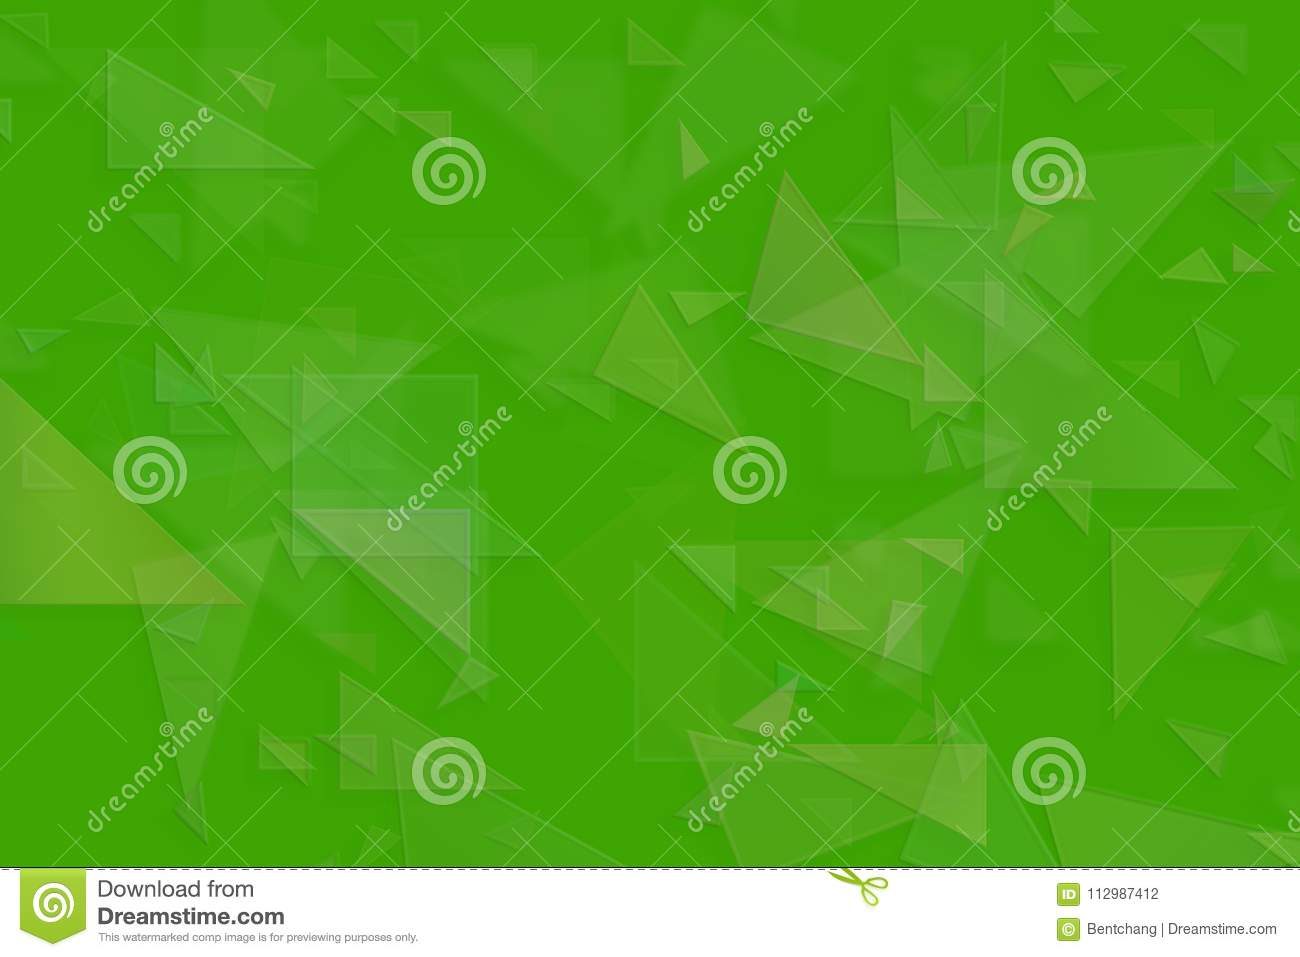 Abstract background with shape. Pattern, details, emboss, decoration & template.